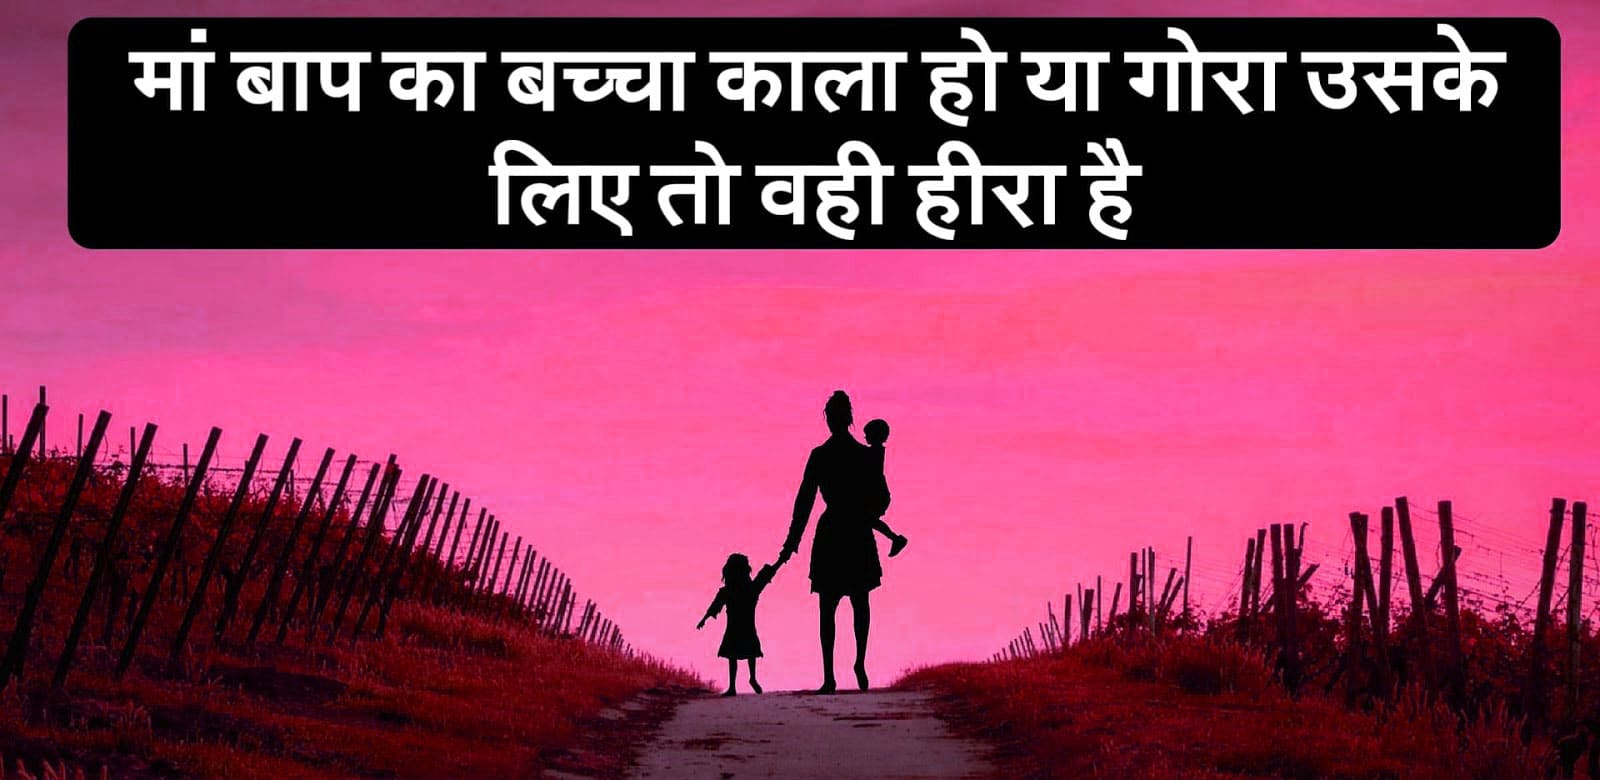 Latest Hindi Shayari Images HD Download 50